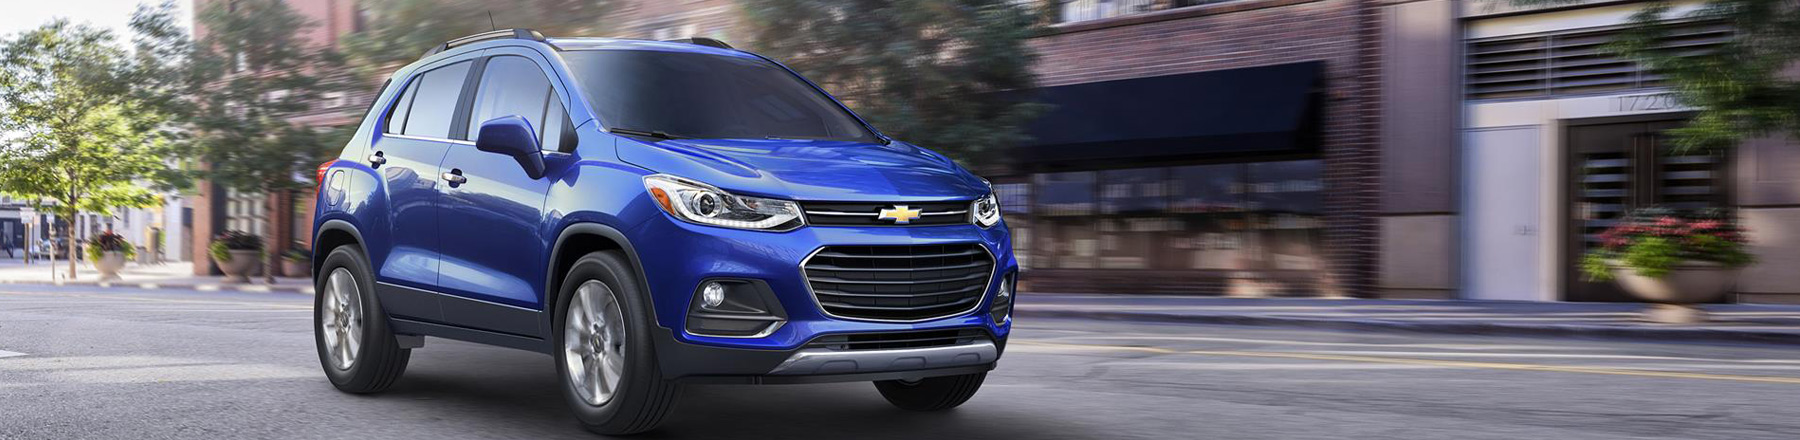 Chevrolet Trax in Parksville, BC